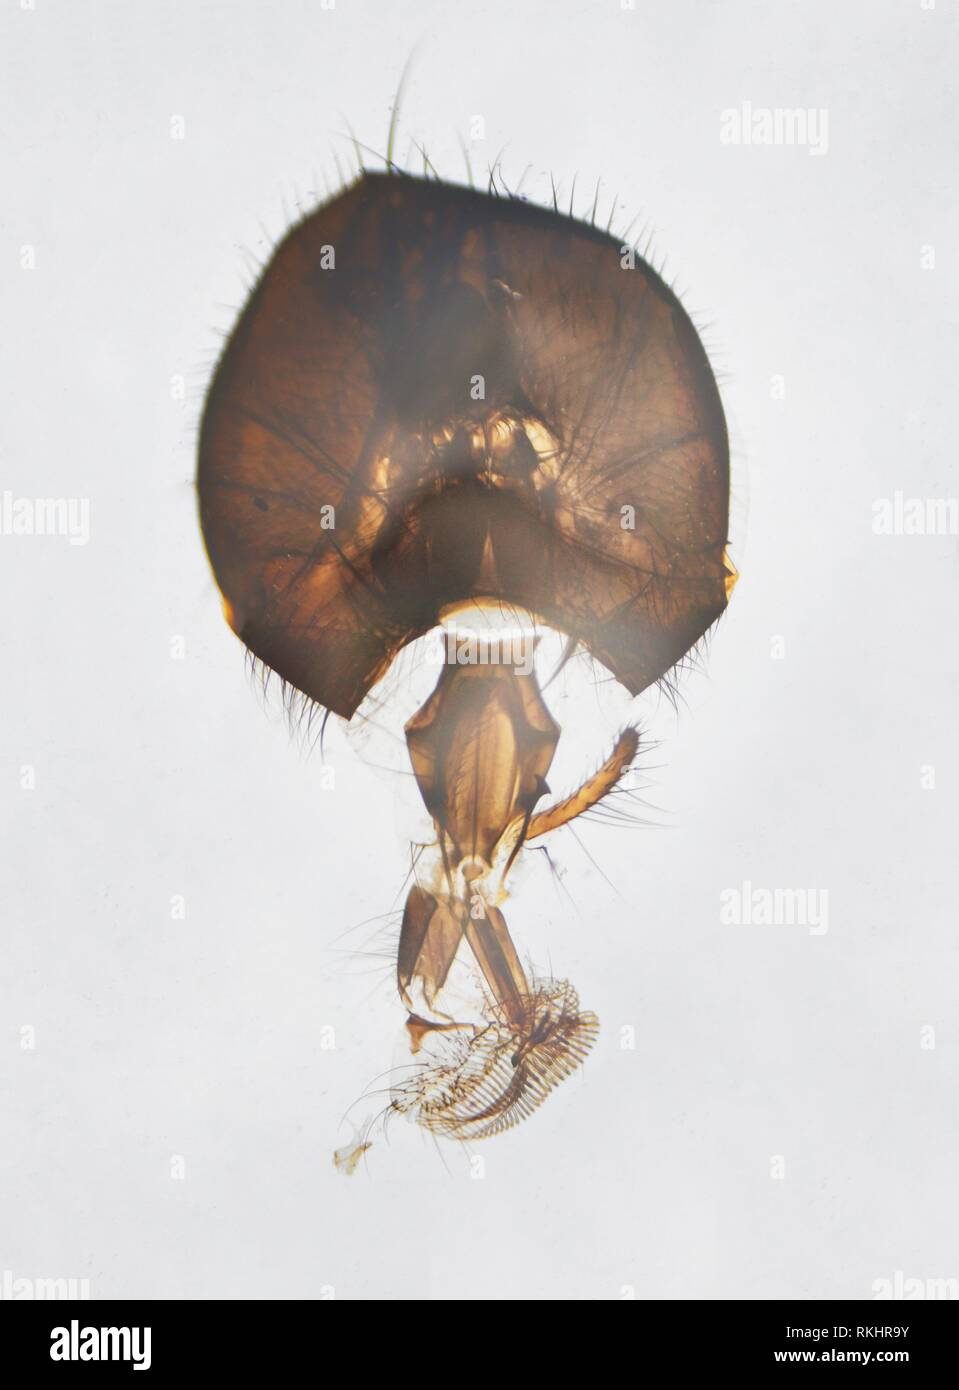 Microscopic photography. House fly mouthpart and head. - Stock Image